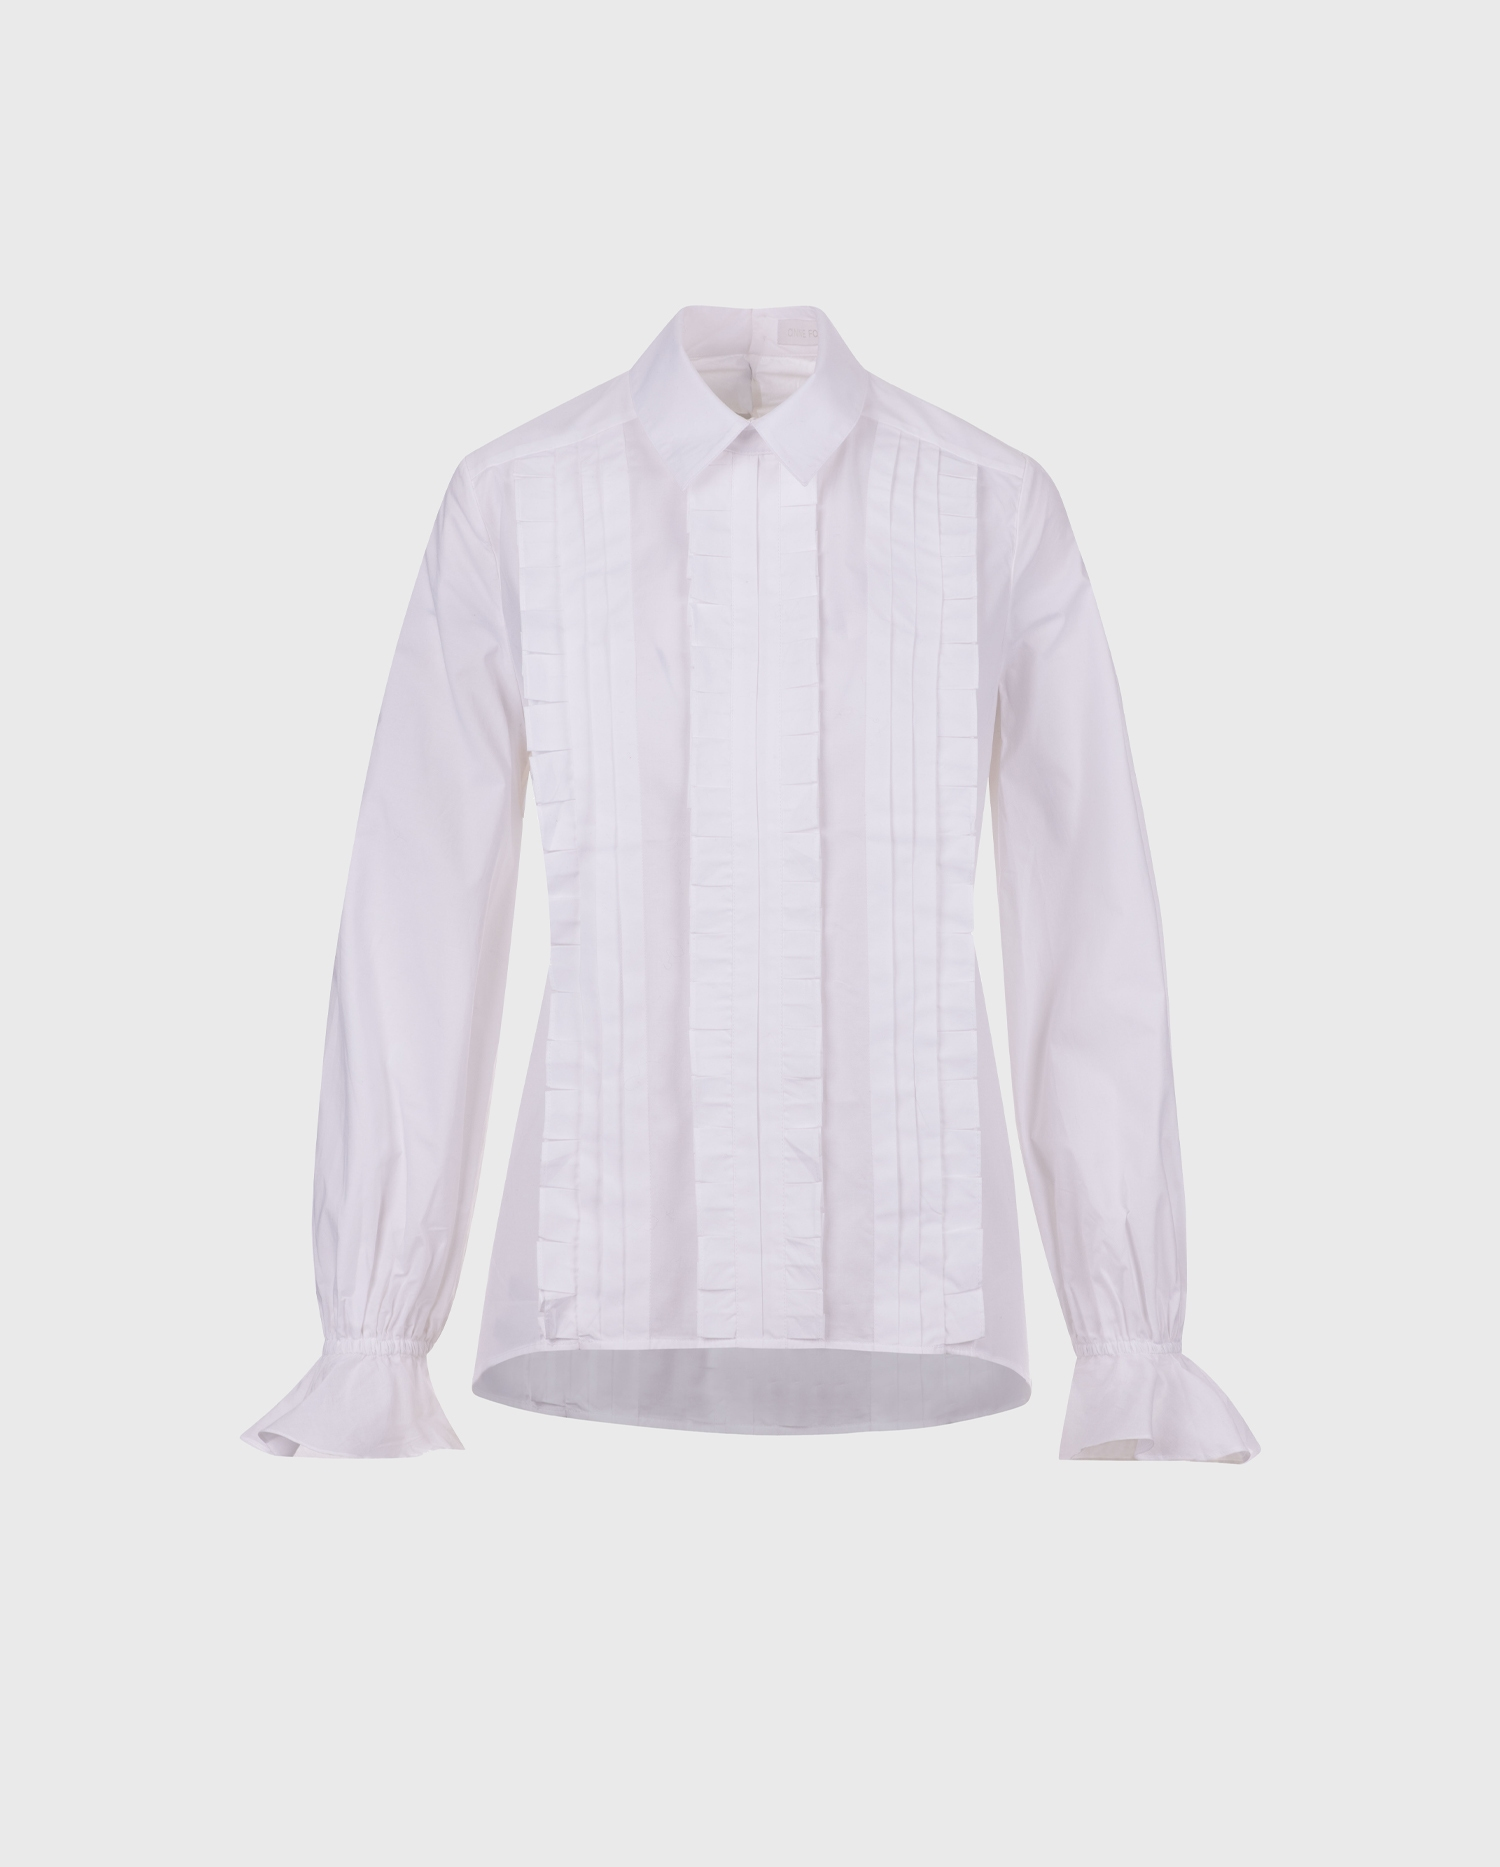 Add the LAVIN white pleated blouse to your wardrobe for a chic and easy silhoutte that will simplify your style.